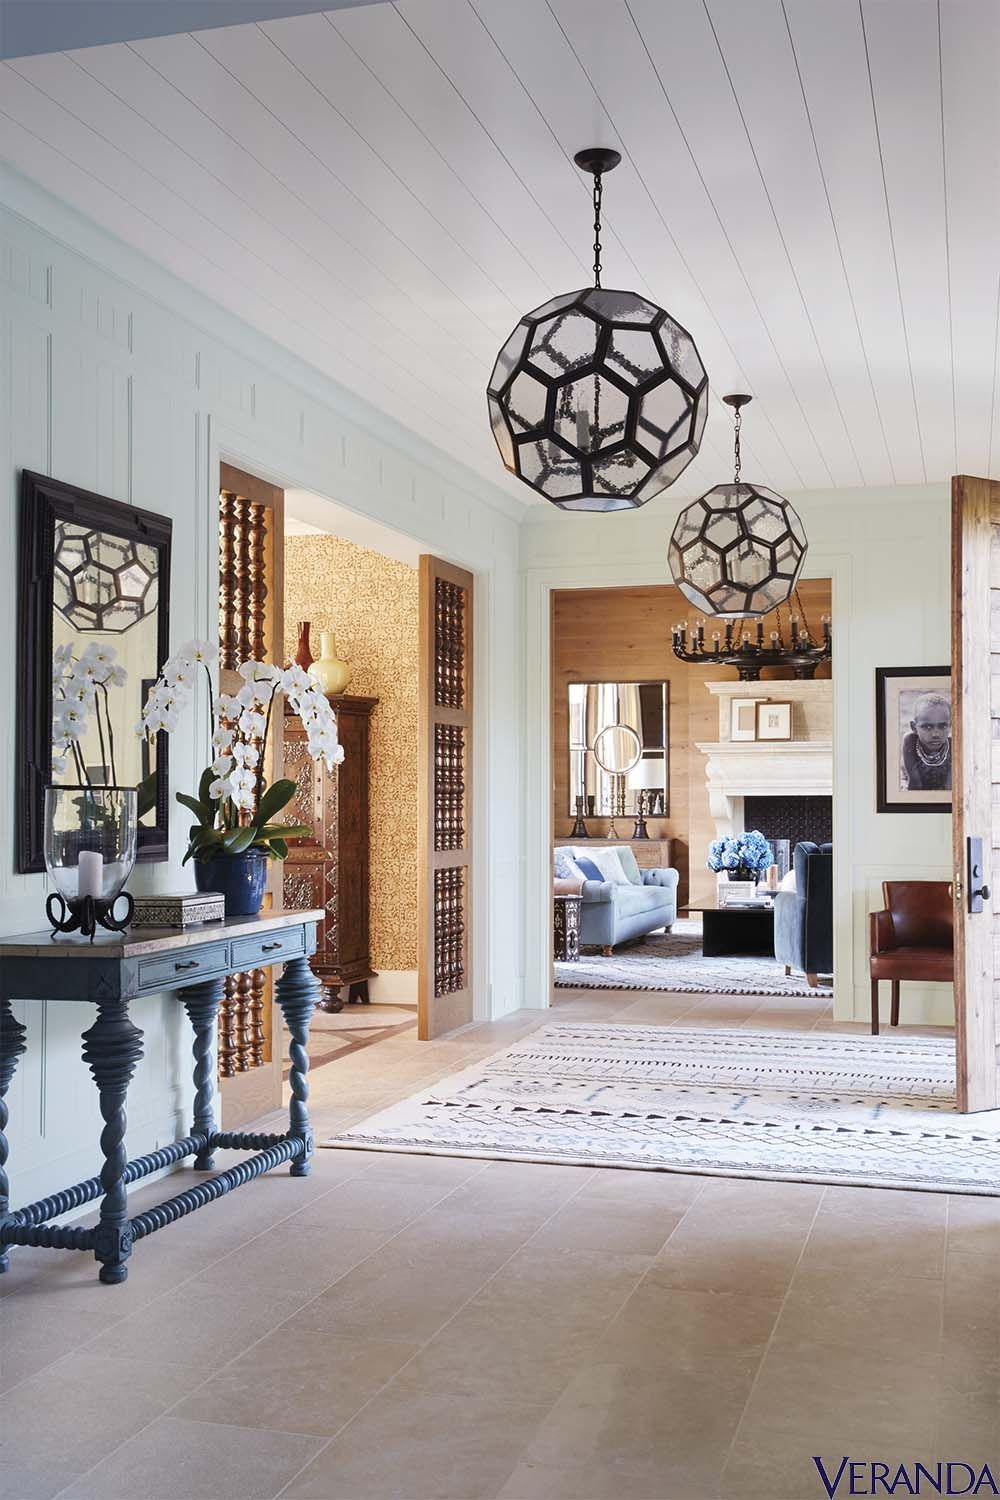 15 Entrance Hall Table Styles To Marvel At: 15 Of The Most Welcoming Entryways We've Ever Seen